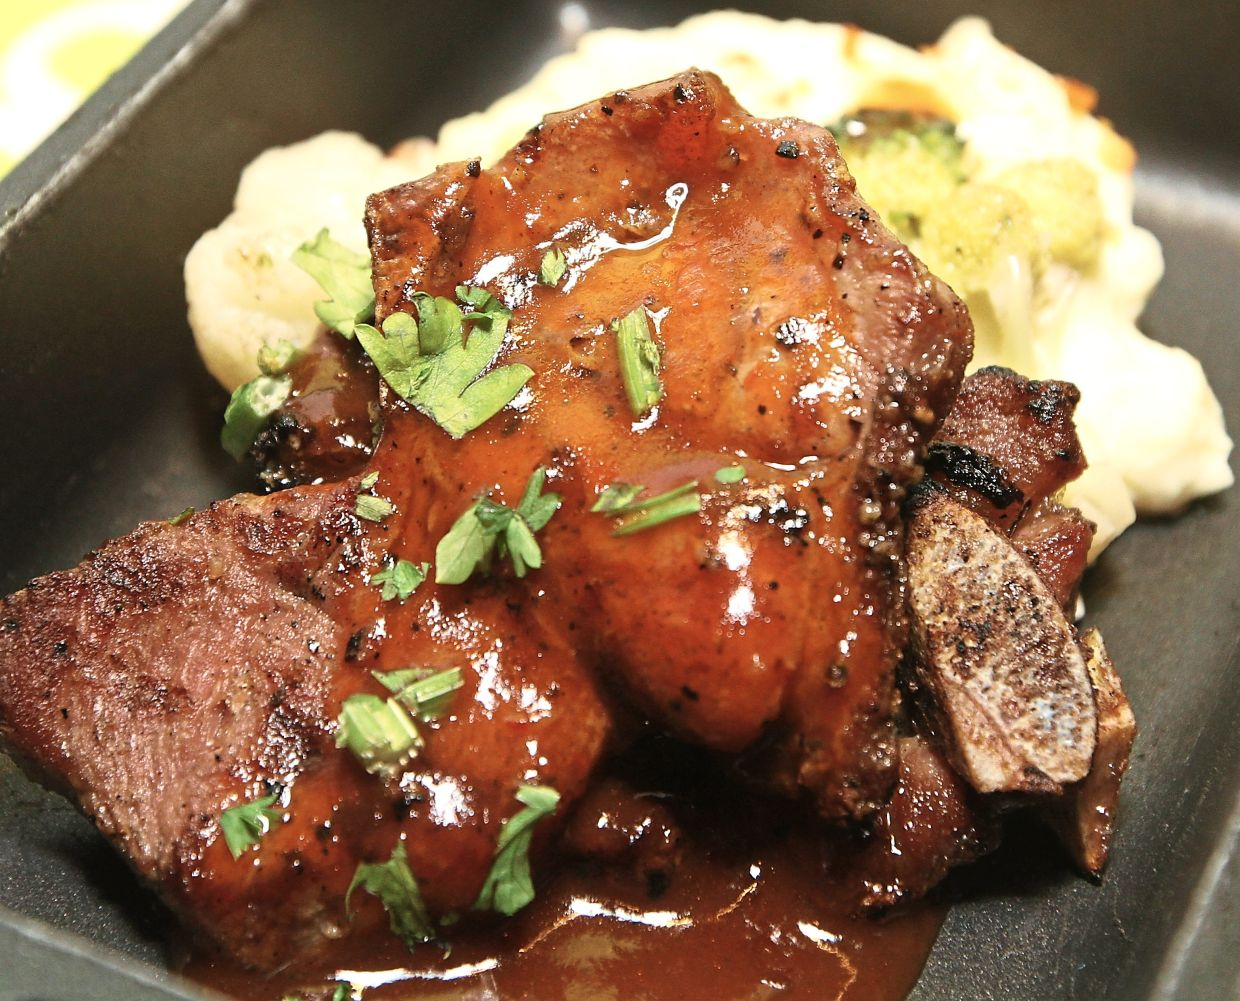 Lamb Slice with Garlic Mashed Potato with a choice of barbeque and mushroom sauce.